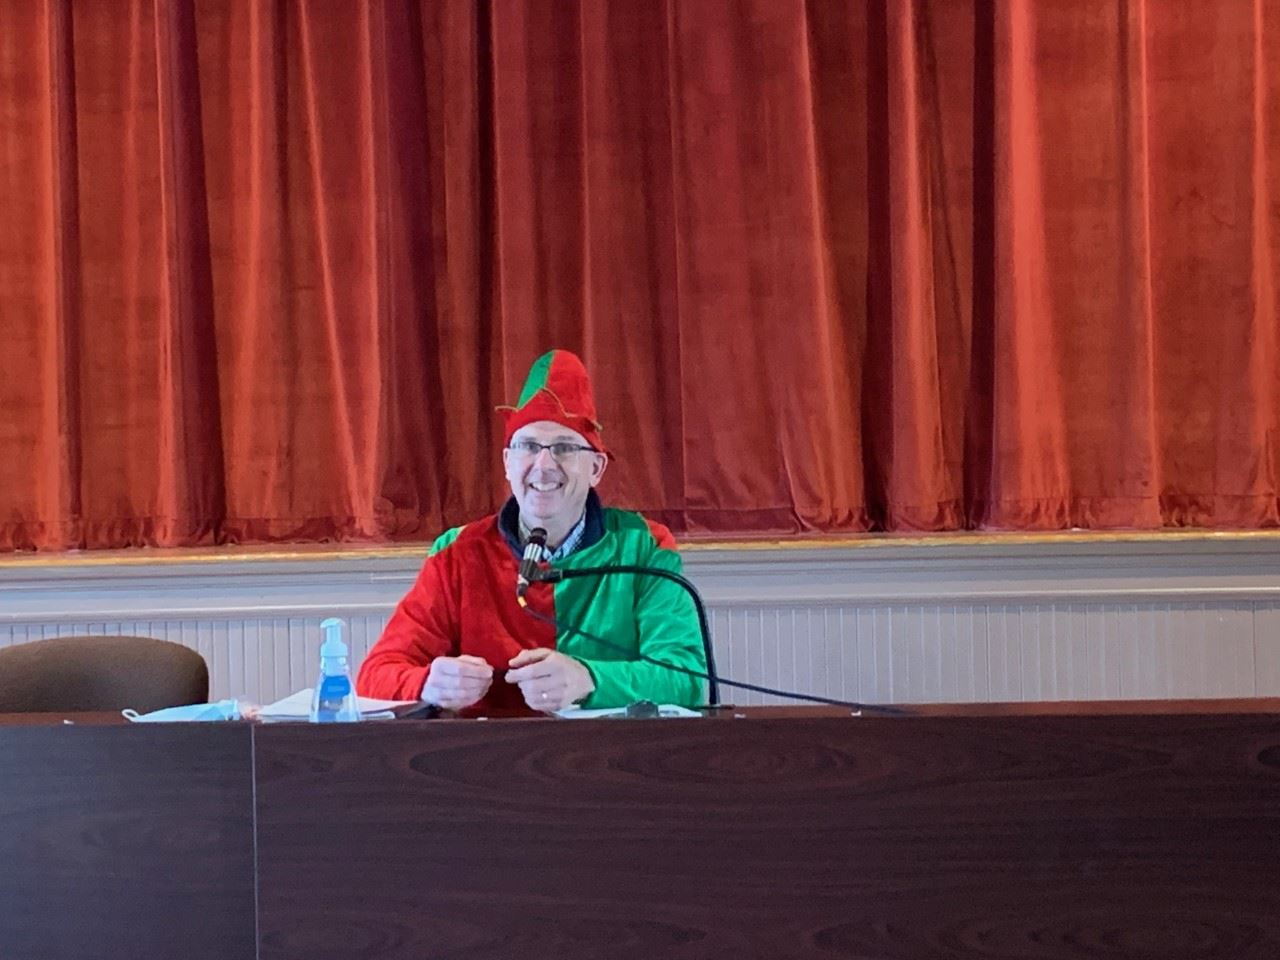 man dressed as elf addressing camera